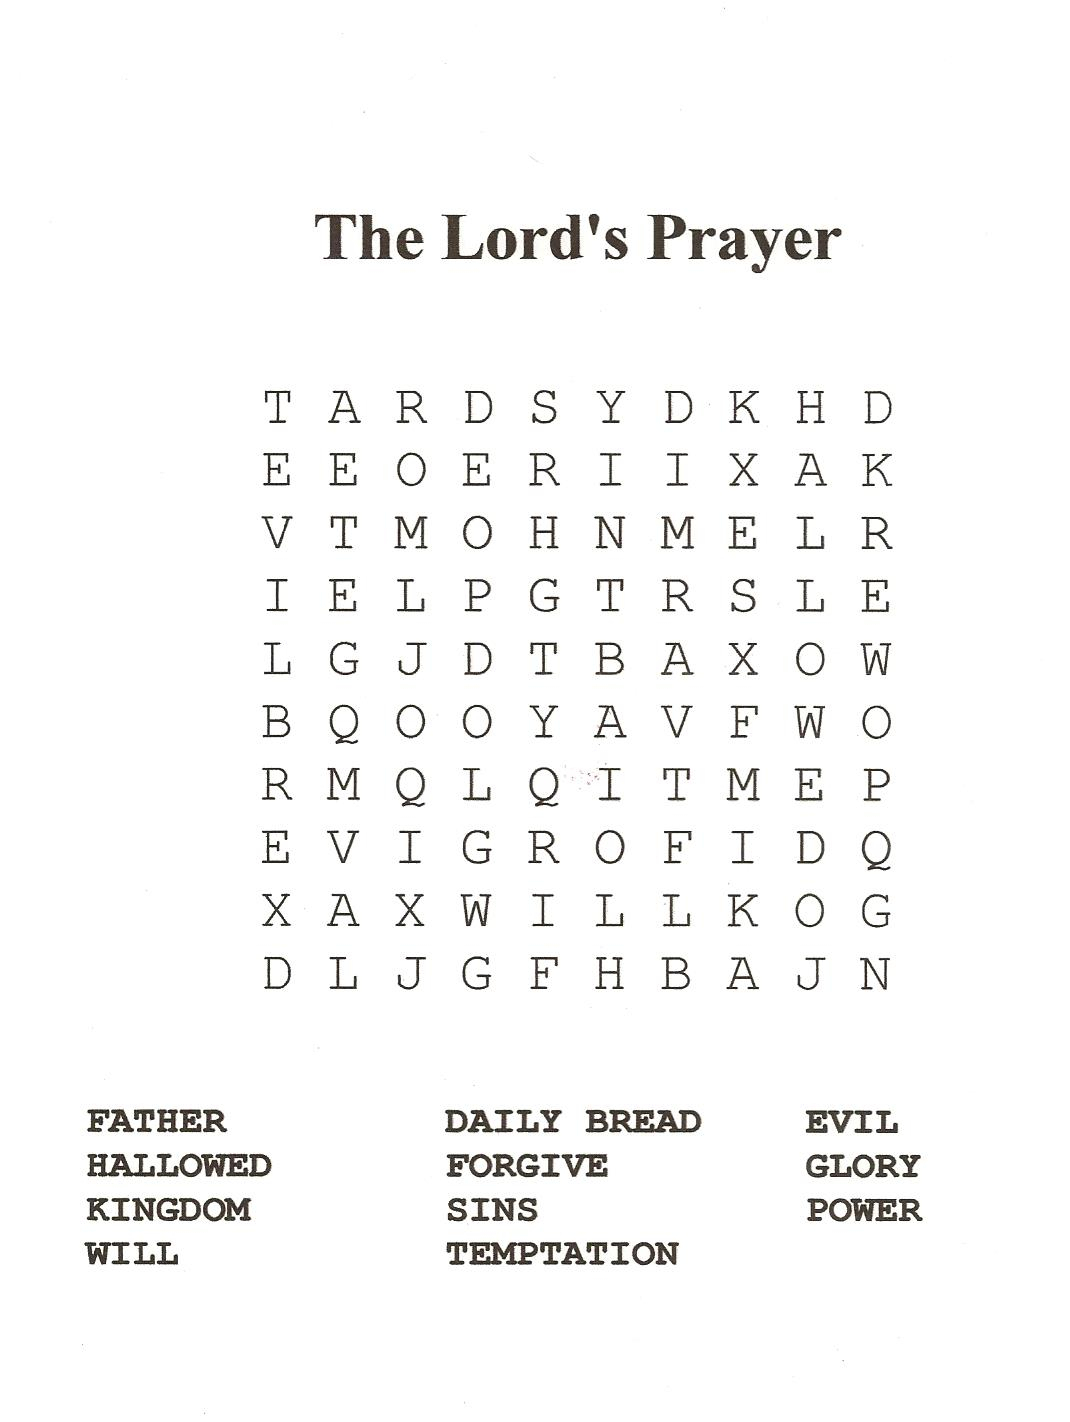 18 Fun Printable Bible Word Search Puzzles | Kittybabylove - Printable Biblical Puzzles